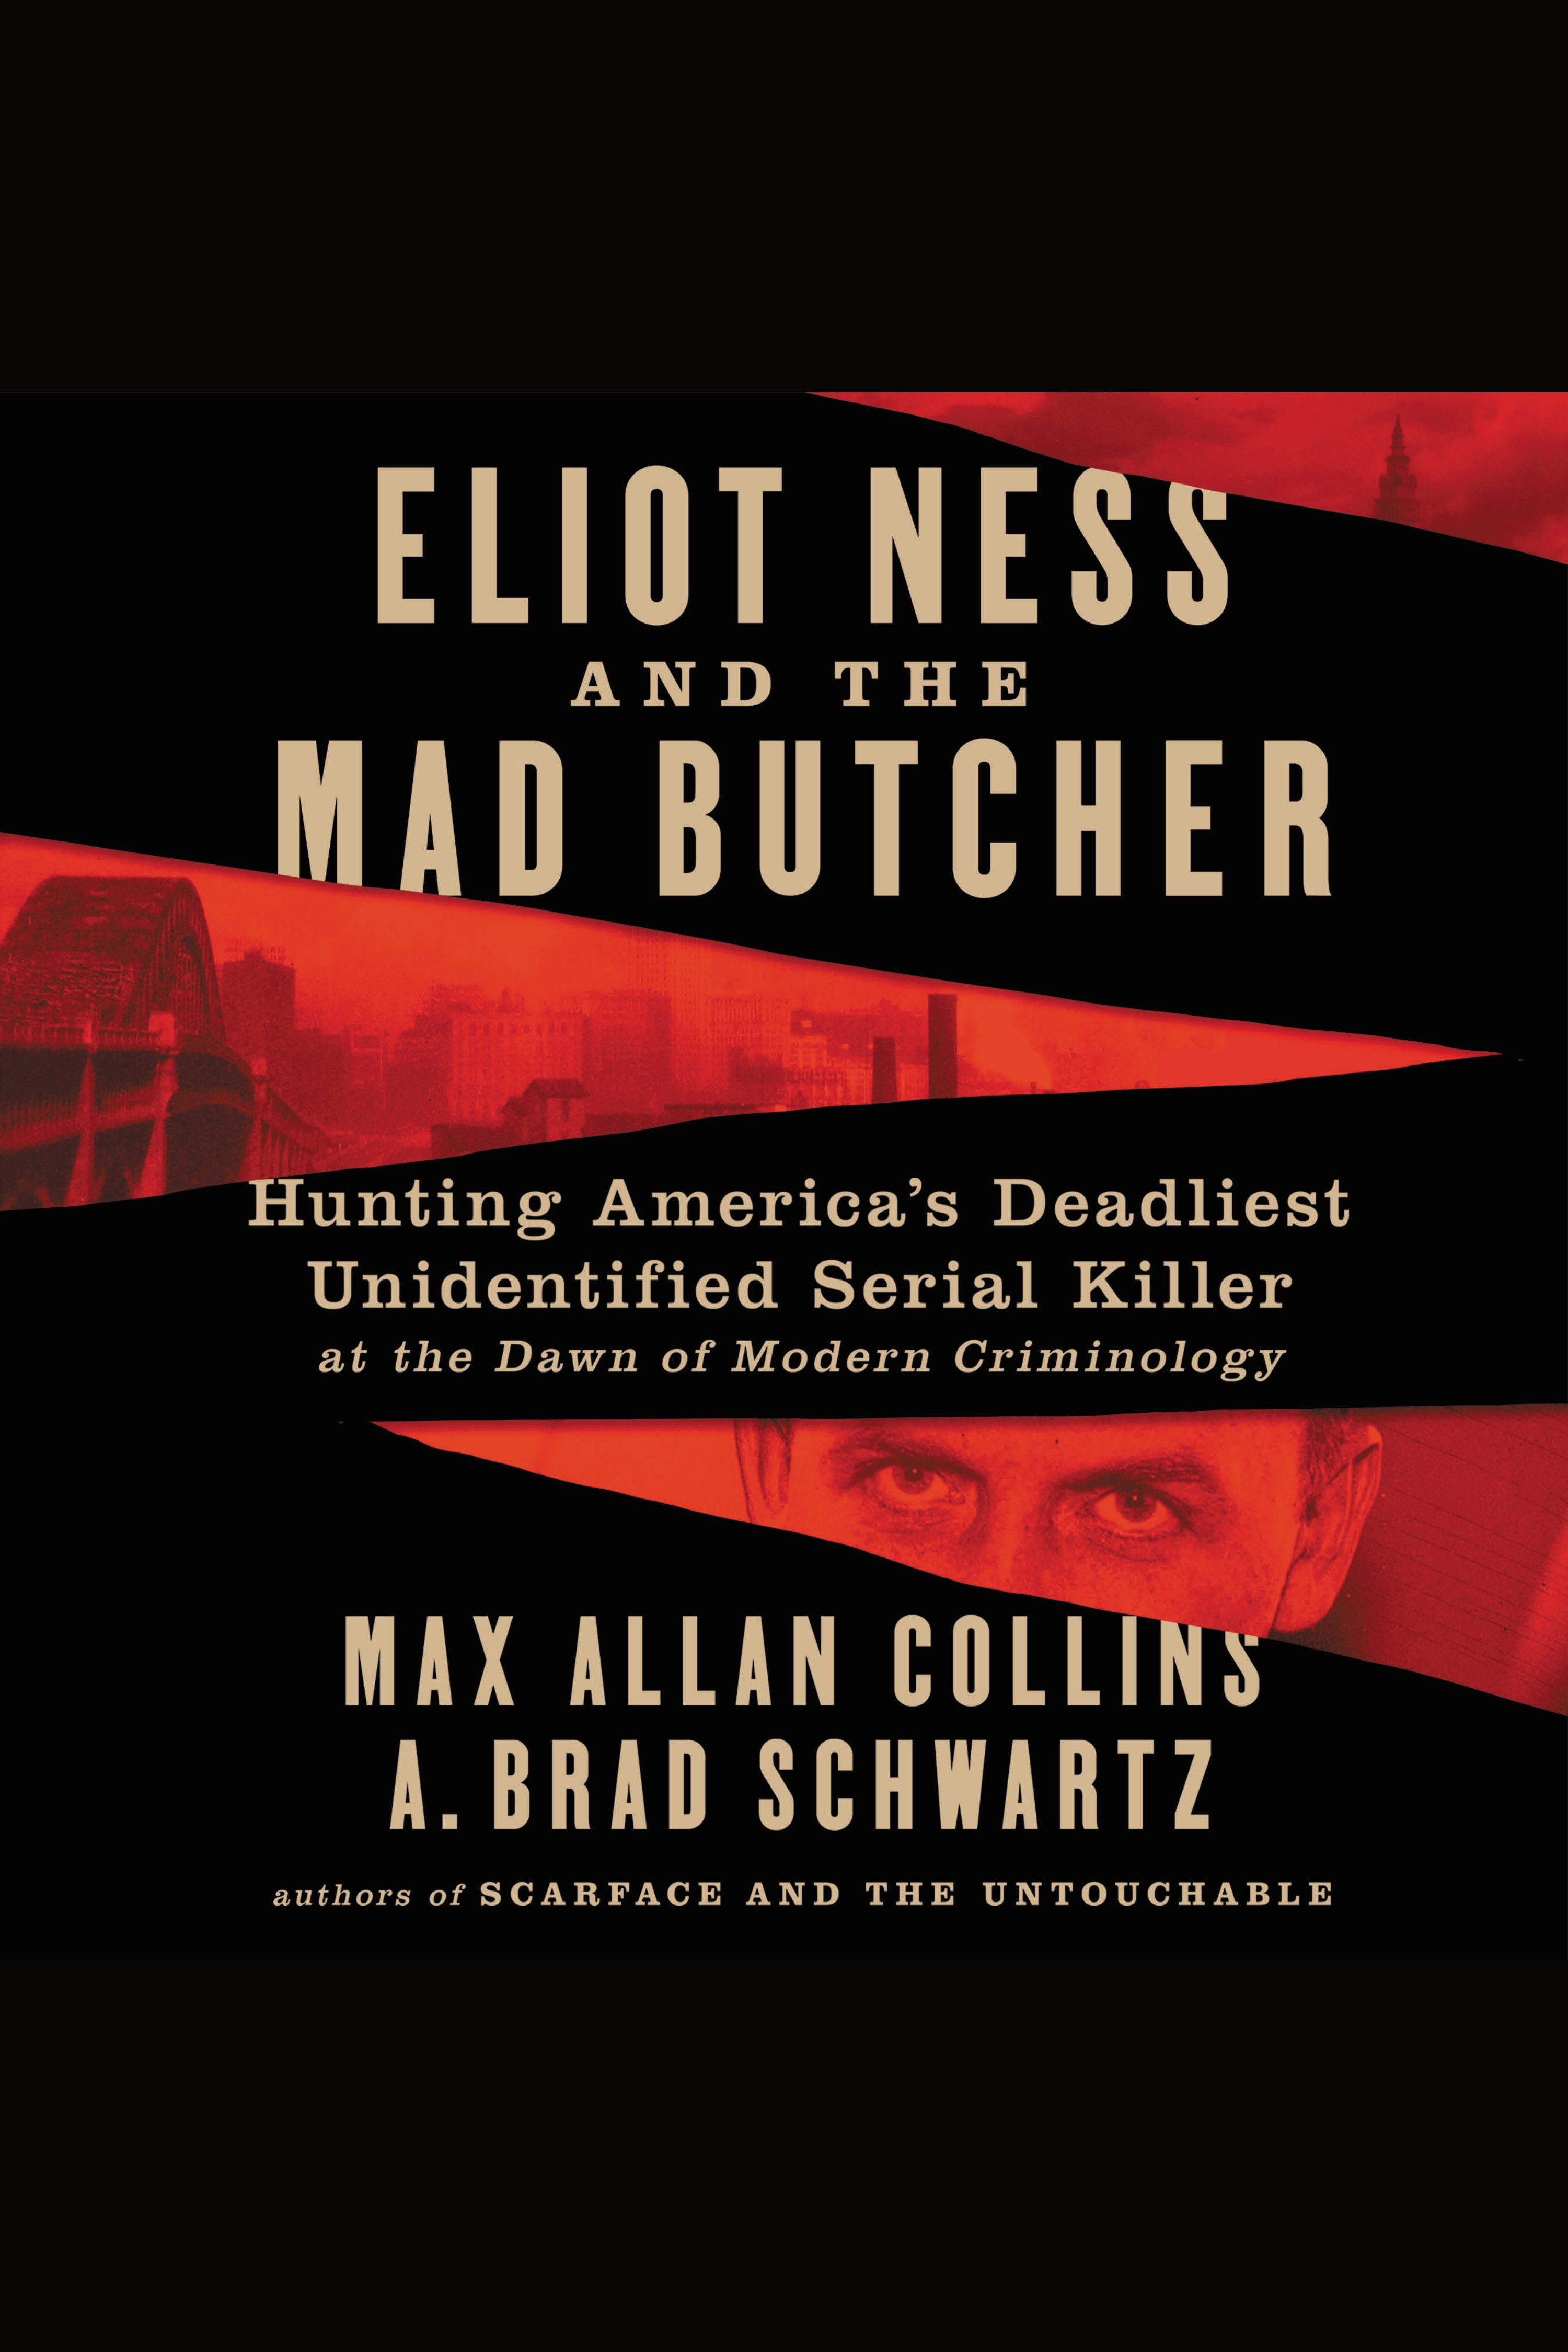 Eliot Ness and the Mad Butcher Hunting America's Deadliest Unidentified Serial Killer at the Dawn of Modern Criminology